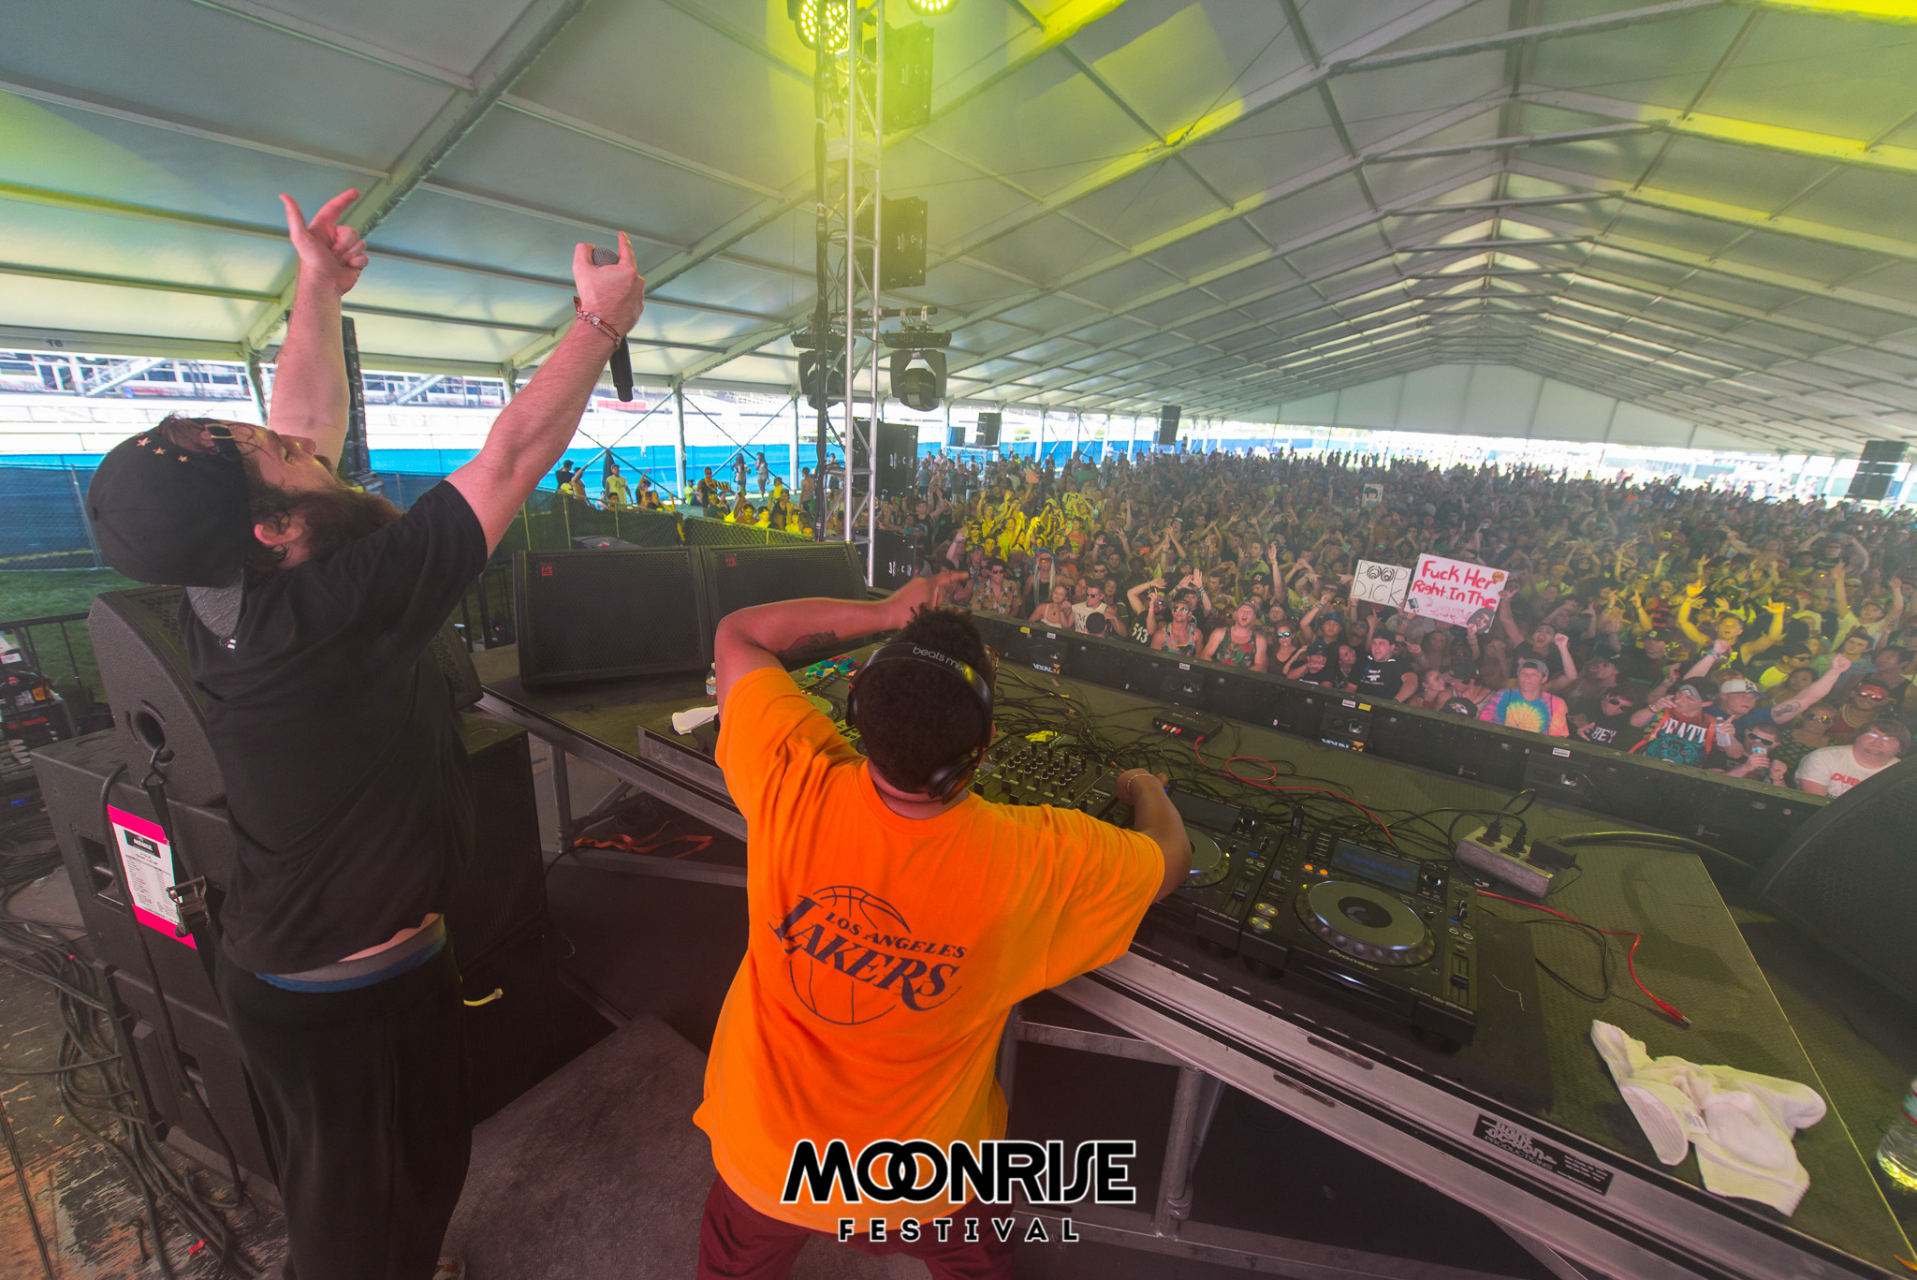 Moonrise_day2-90